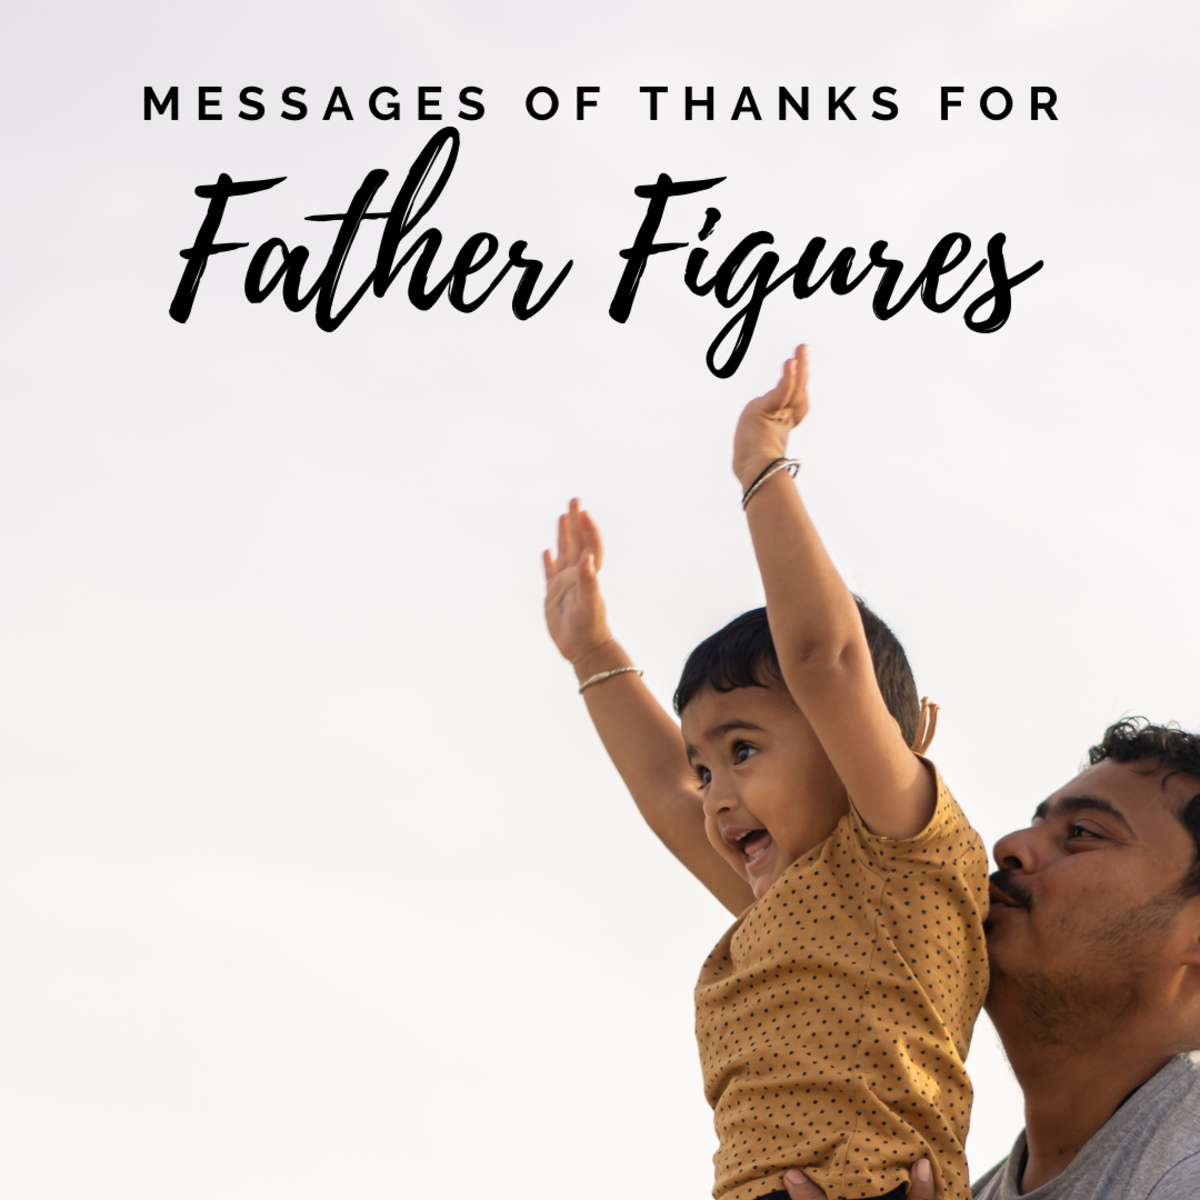 Thank-you messages for father figures